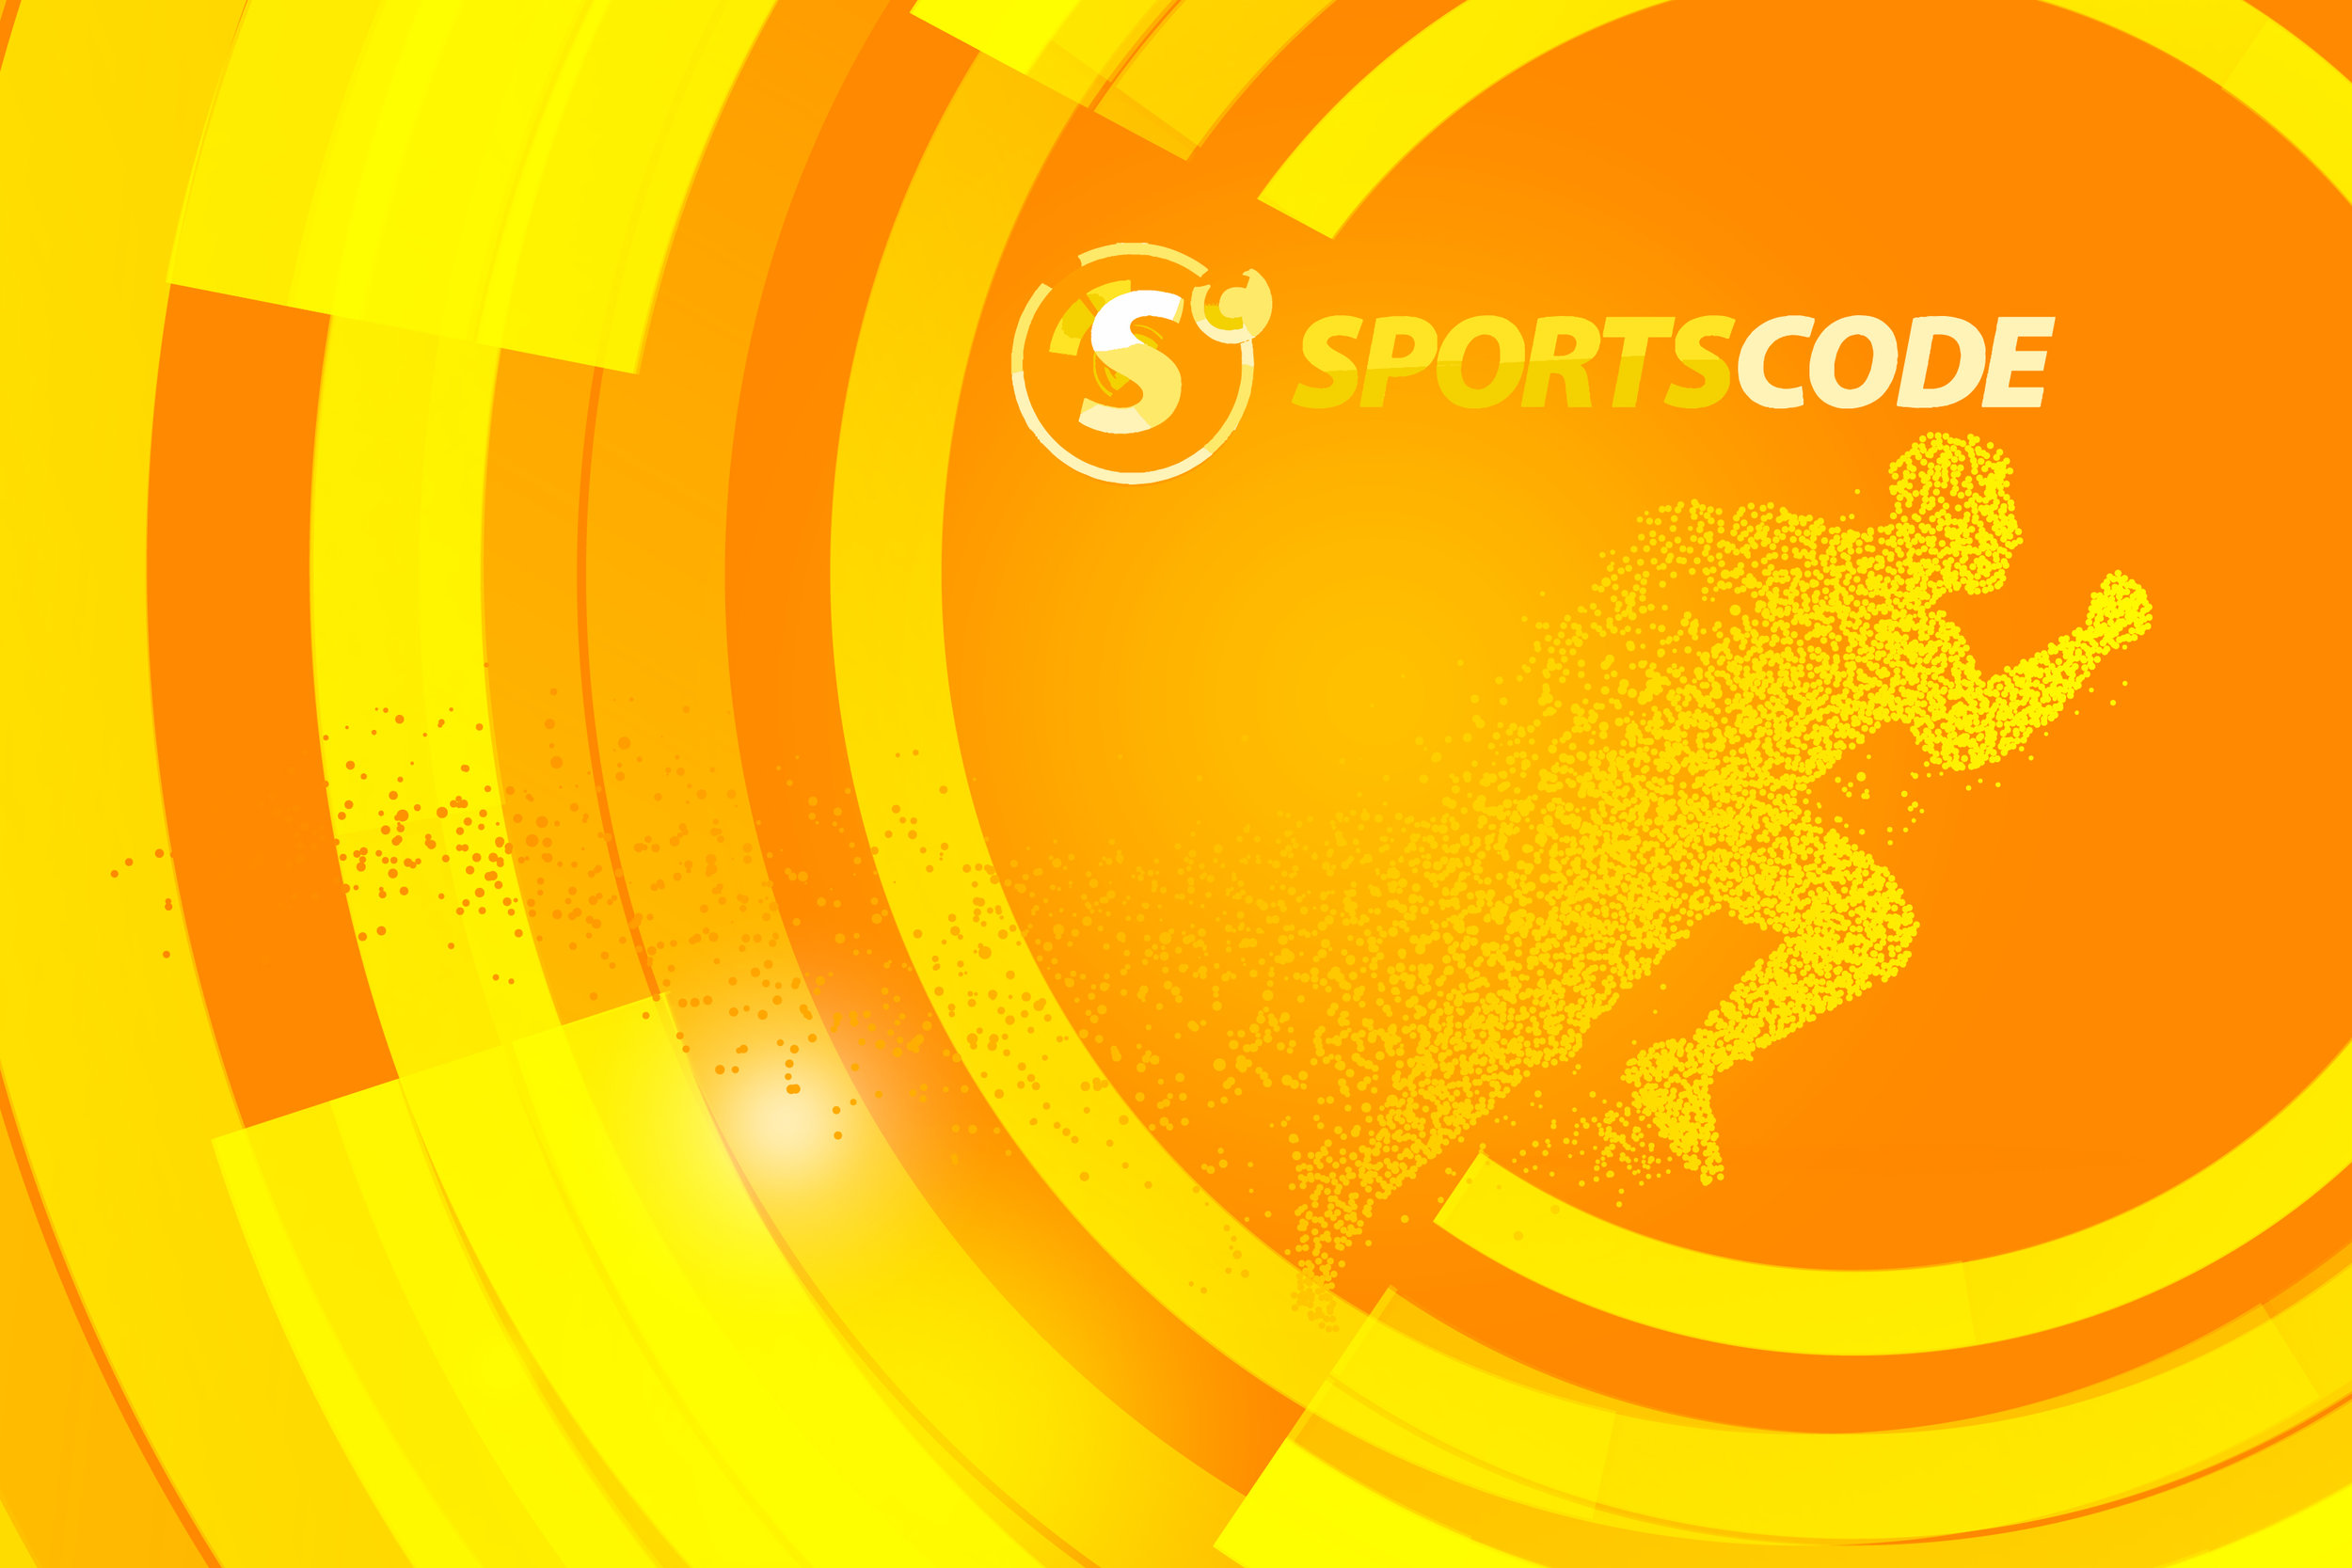 An overview of Sportscode, a key video analysis platform for